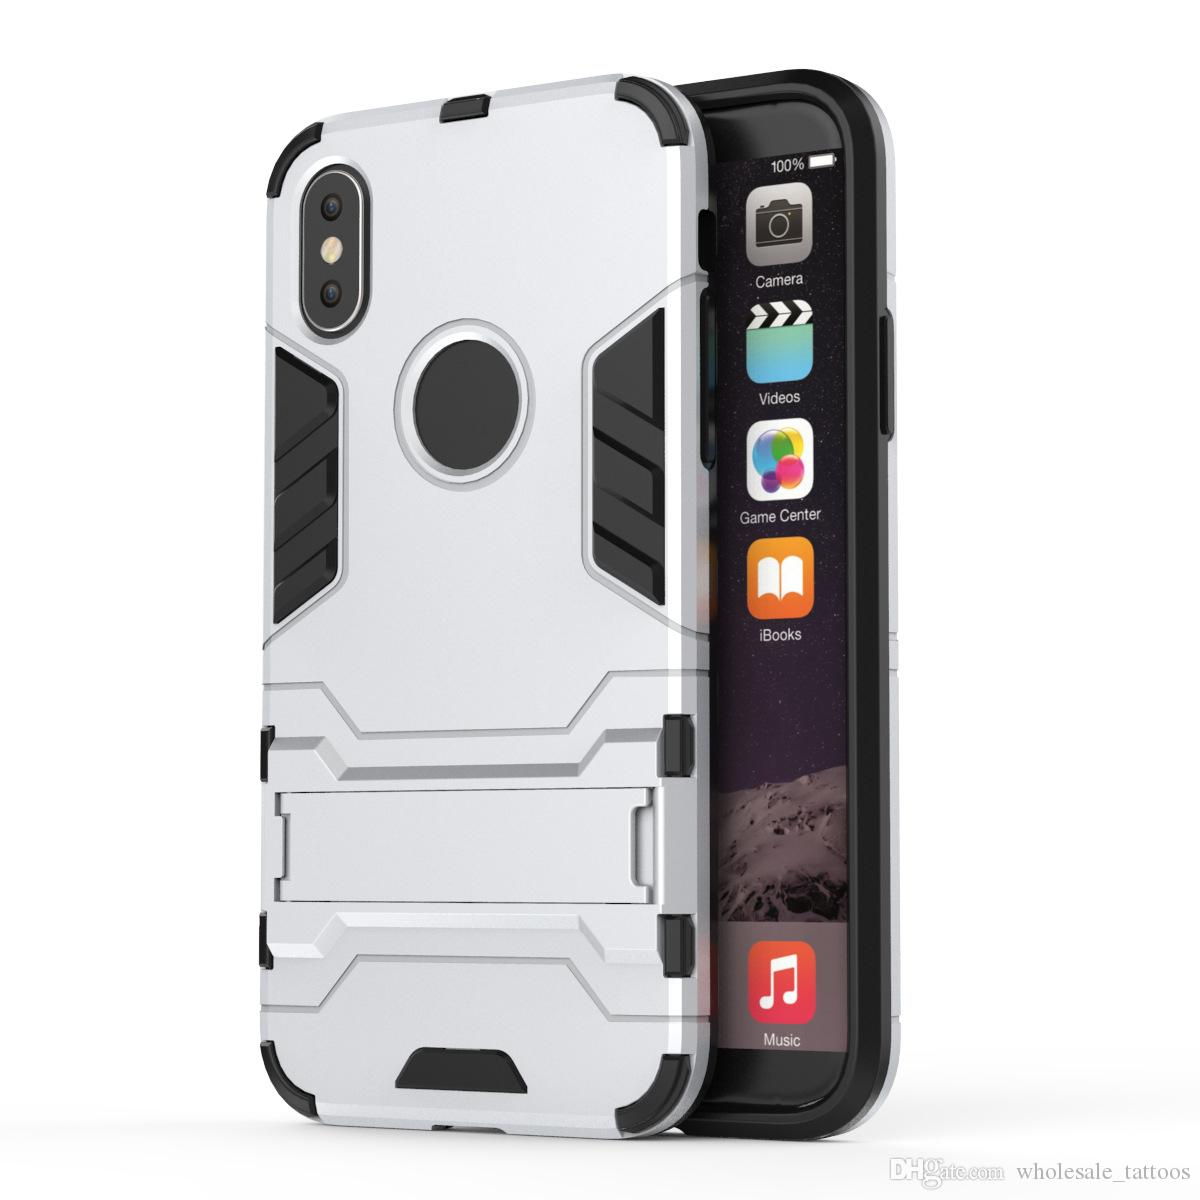 size 40 798bb 4fea0 Iron Man 2in1 Hybrid Armor Cover Case With Kickstand For ZTE Blade Spark  Z971 Grand X4 Z956 LG Q6 Stylo 2 Stylus 2 LS775 Stylo 2 Plus MS550